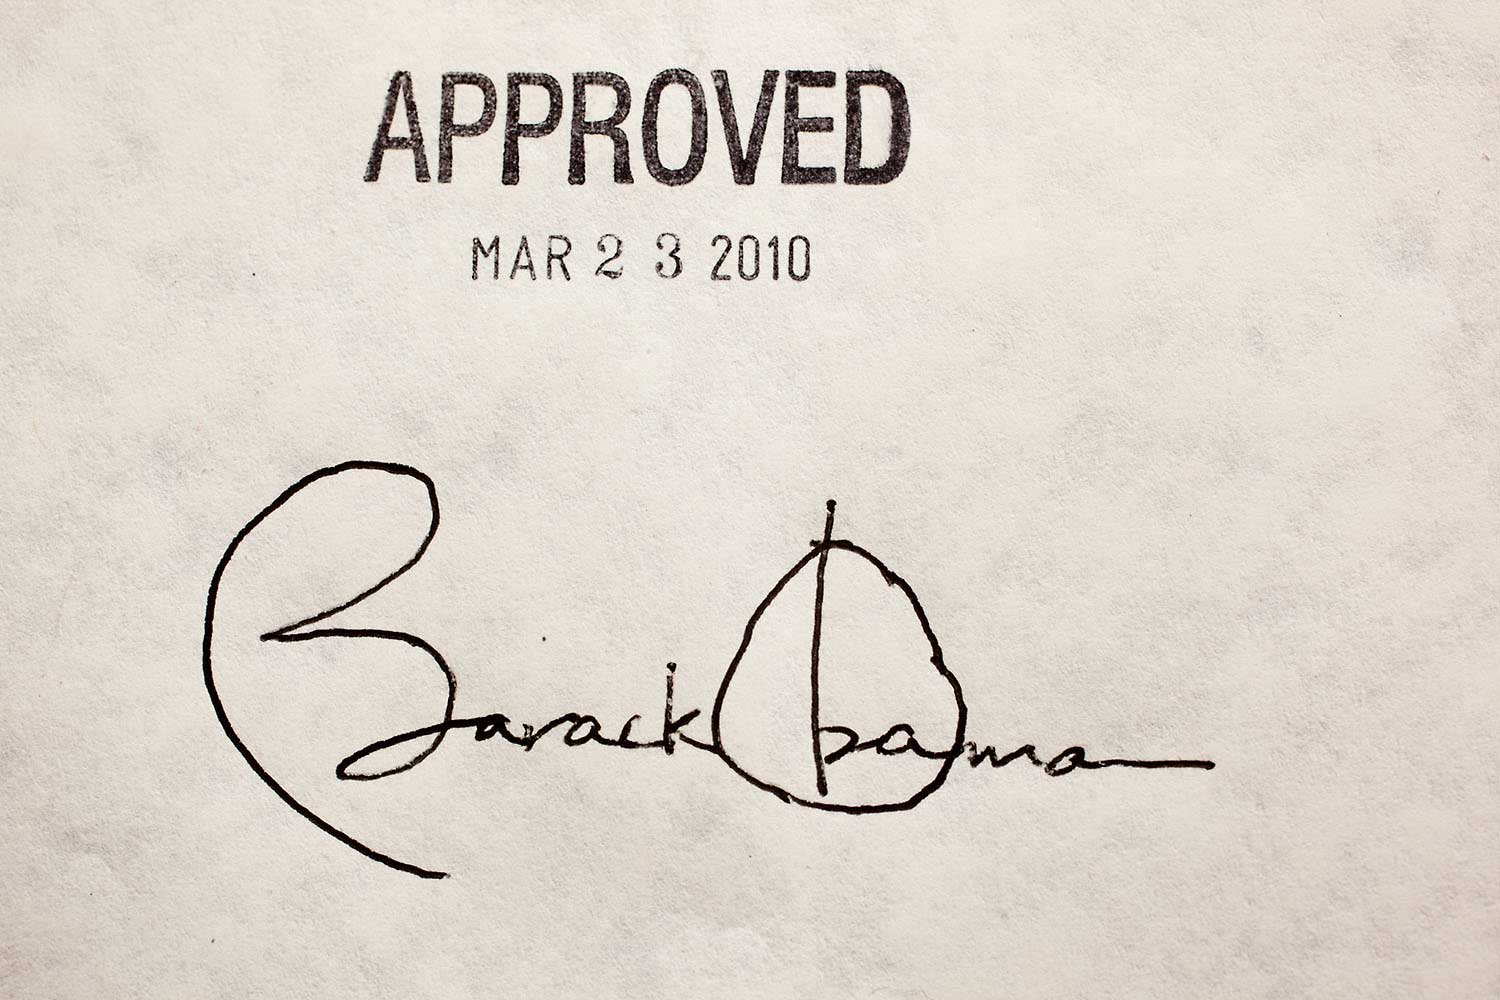 President Obama's signature on the health insurance reform bill at the White House, March 23, 2010.